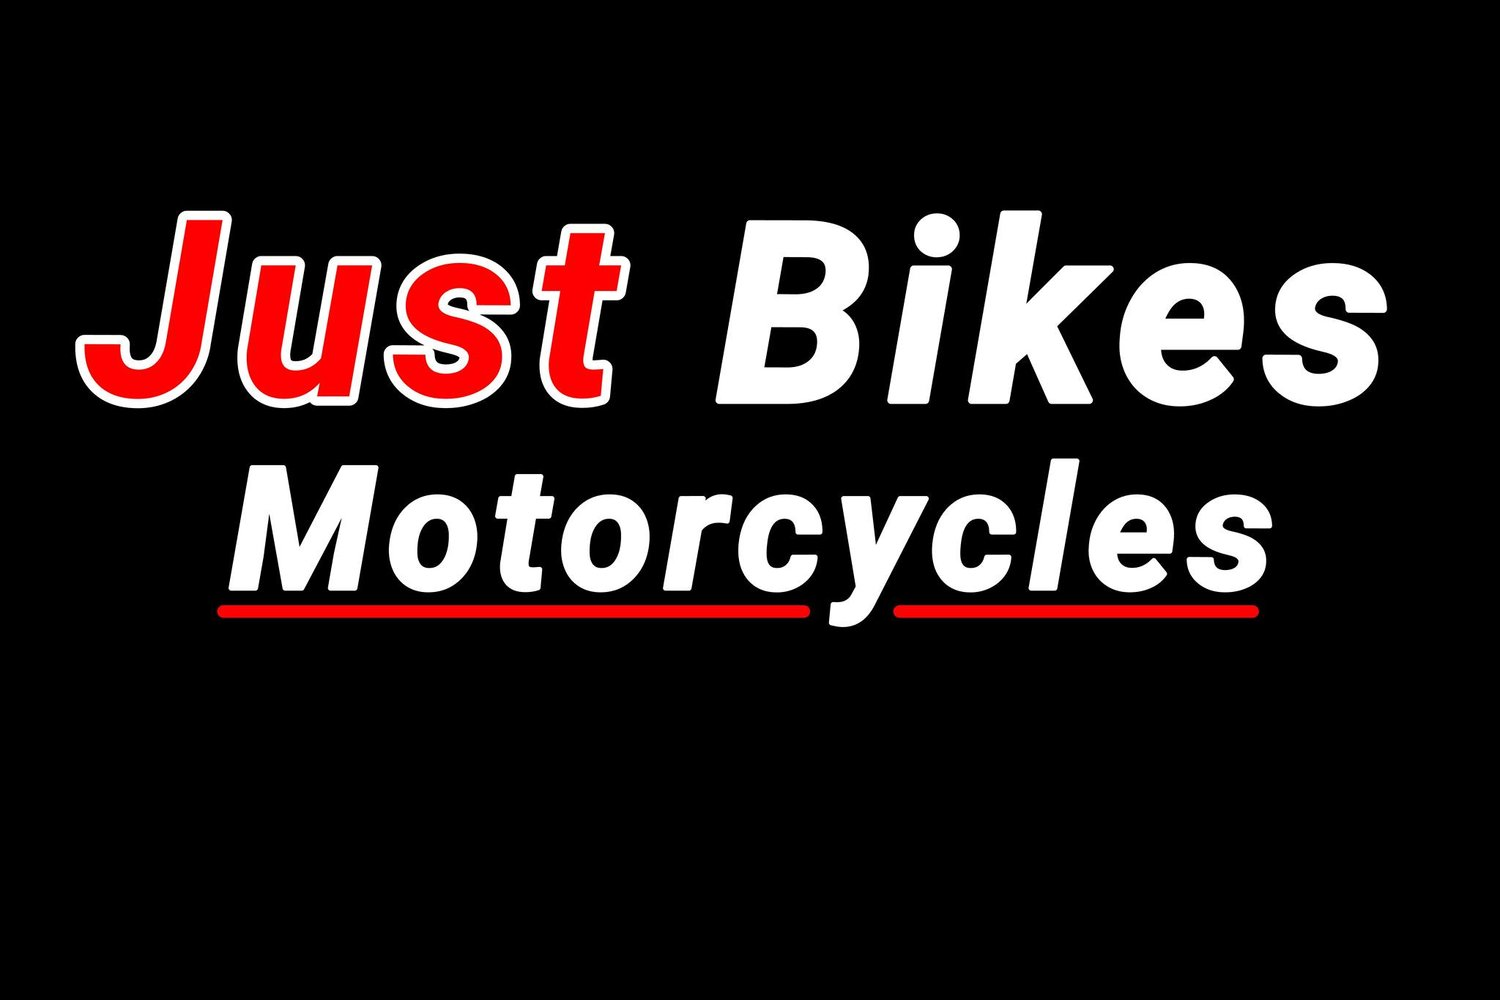 Just Bikes Motorcycles